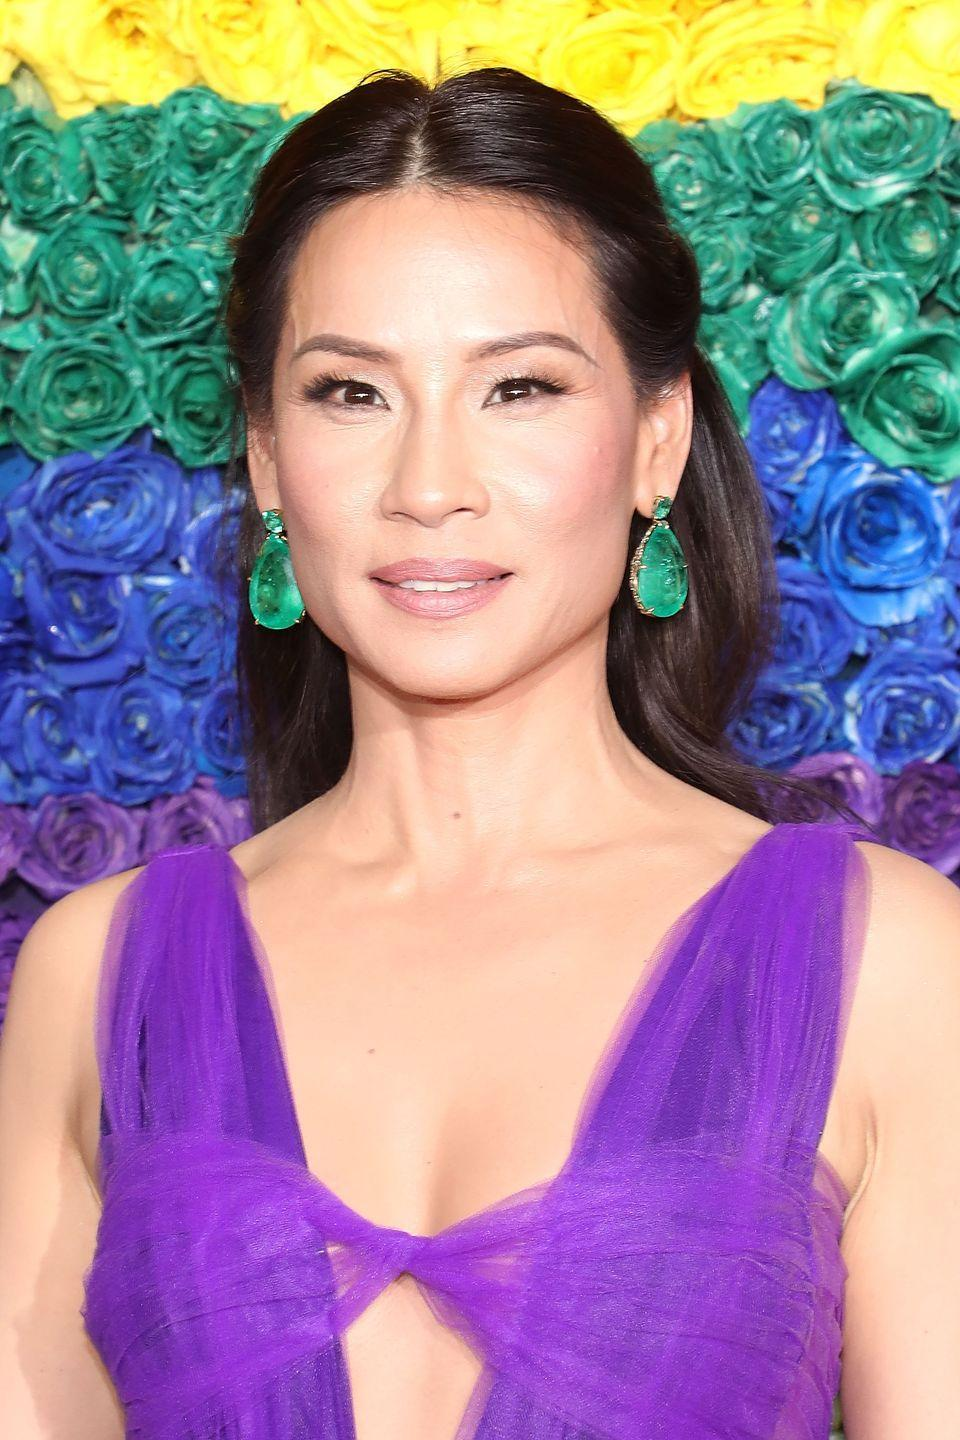 """<p>This star is a SoulCycle devotee, telling <a href=""""https://www.eonline.com/news/801064/lucy-liu-has-a-few-anti-aging-secrets-you-need-to-know-now"""" rel=""""nofollow noopener"""" target=""""_blank"""" data-ylk=""""slk:E! News"""" class=""""link rapid-noclick-resp""""><em>E! News</em></a> that she prefers to start her workdays with a 6 a.m. class: """"It energizes me and helps wake me up in the morning. With all of the lines that I have to memorize, it sort of activates my brain.""""</p>"""